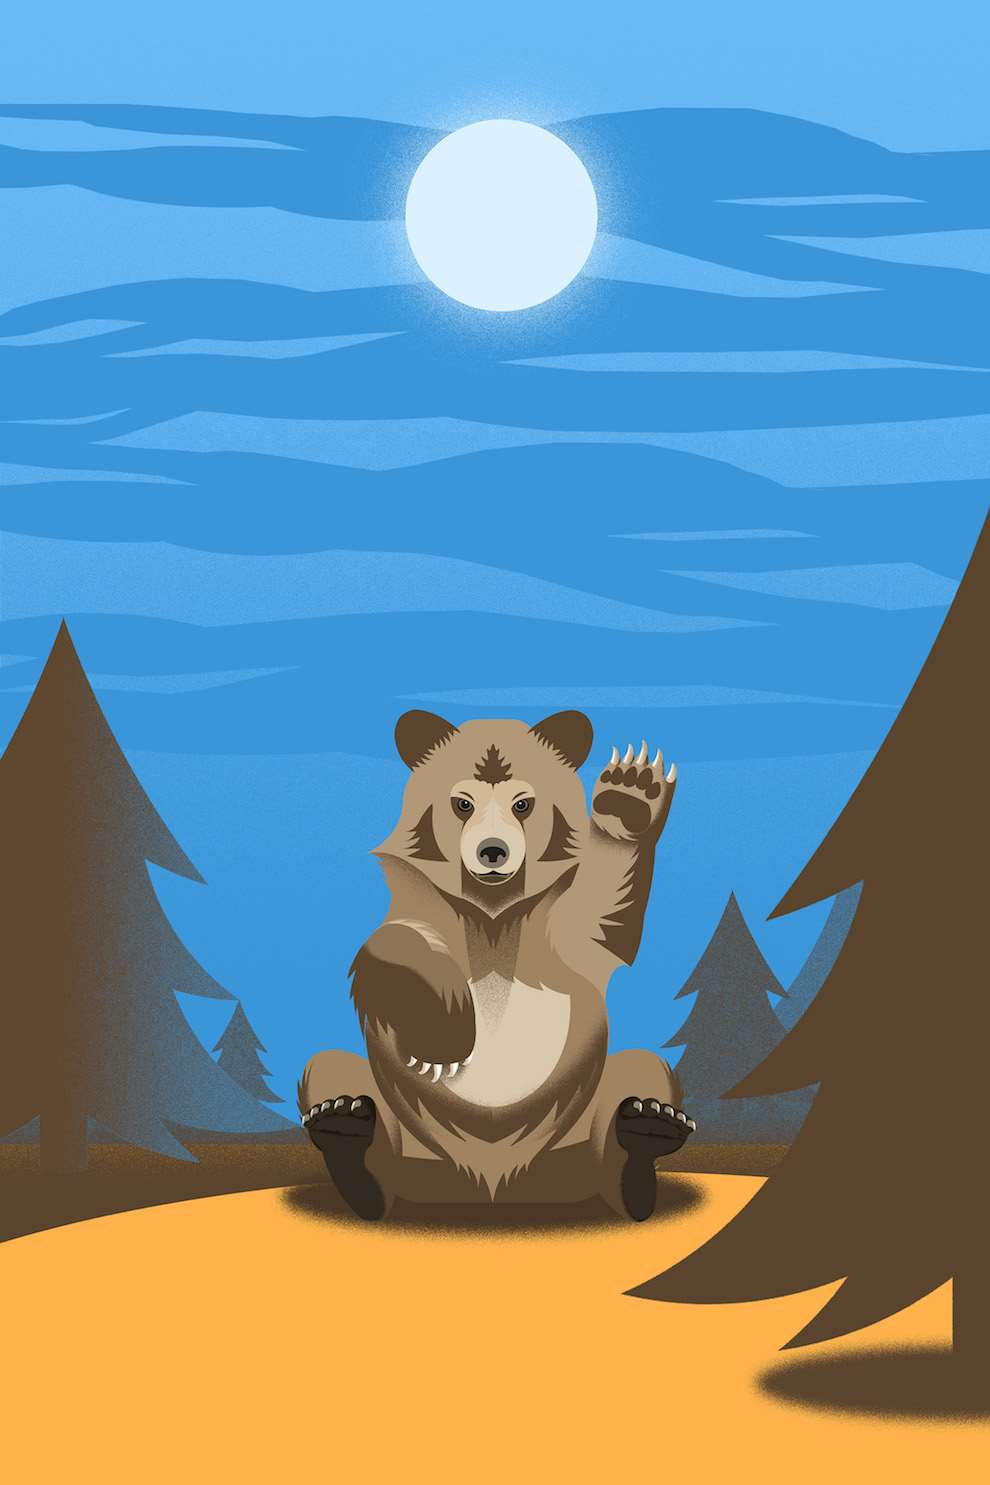 Blue Bateau, Bold and graphic digital illustration of a bear waving in the moonlight